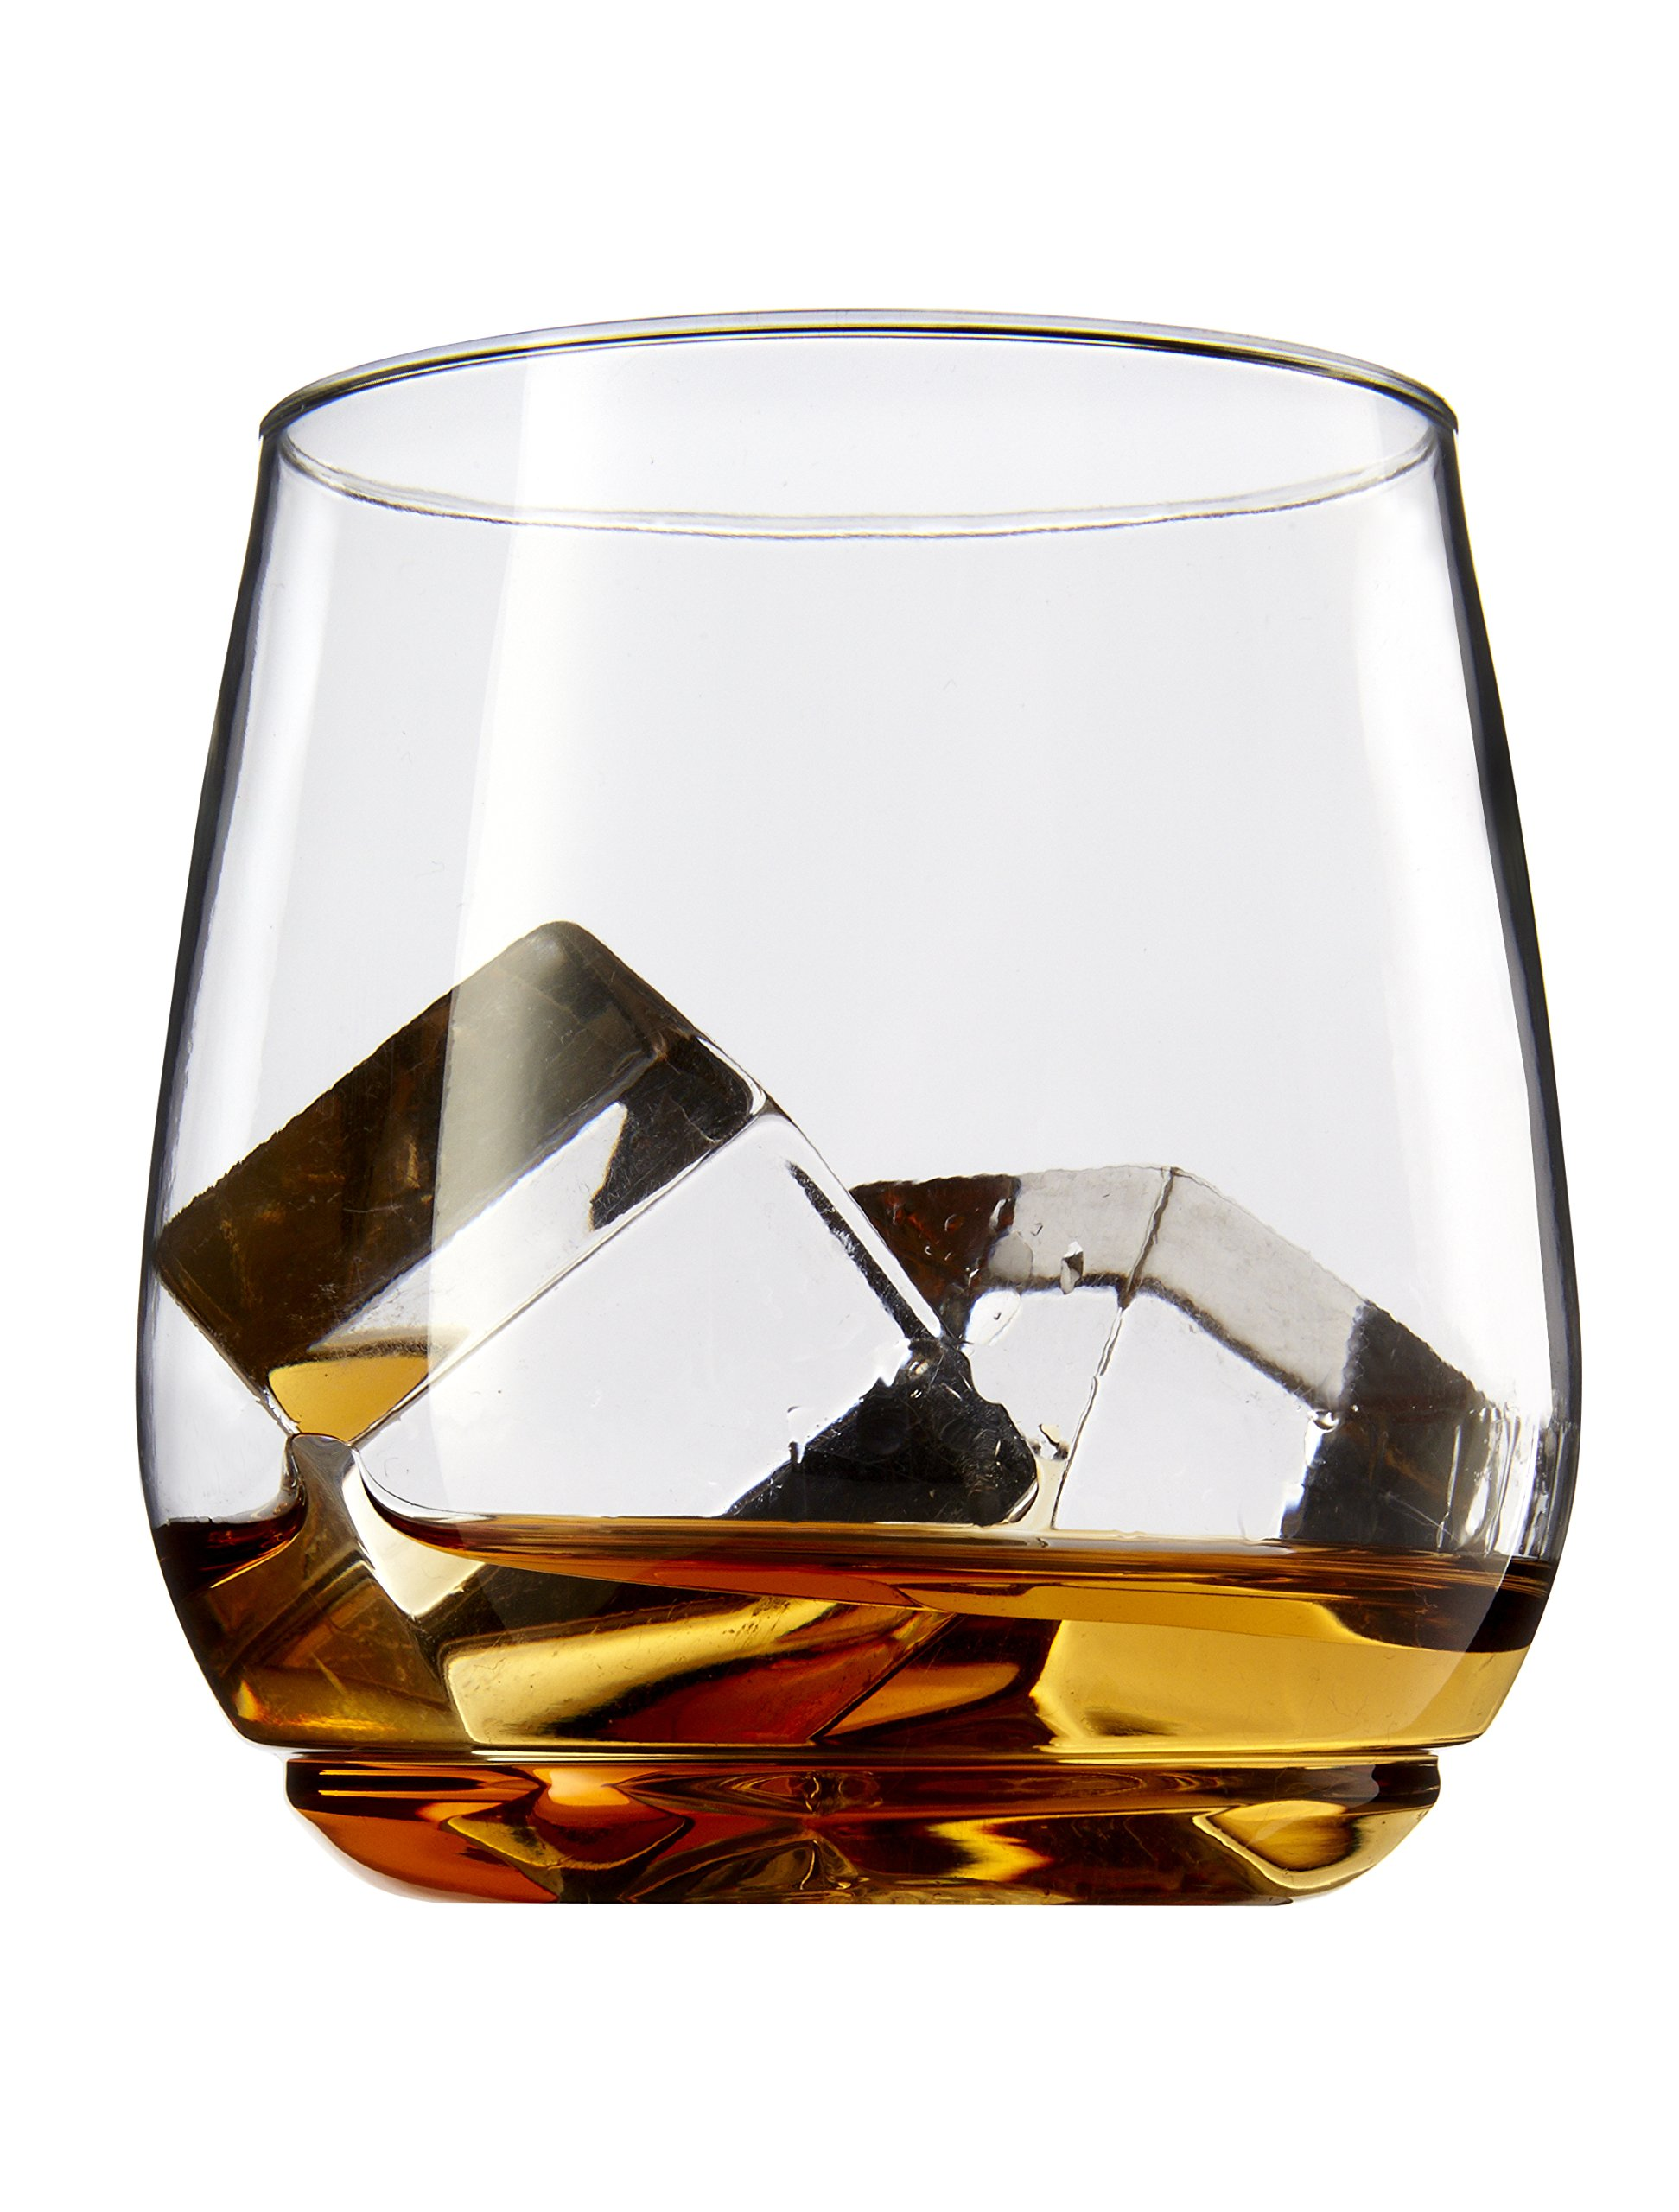 TOSSWARE 12oz Tumbler Jr - recyclable cocktail and whiskey plastic cup - SET OF 12 - stemless, shatterproof and BPA-free whiskey glasses